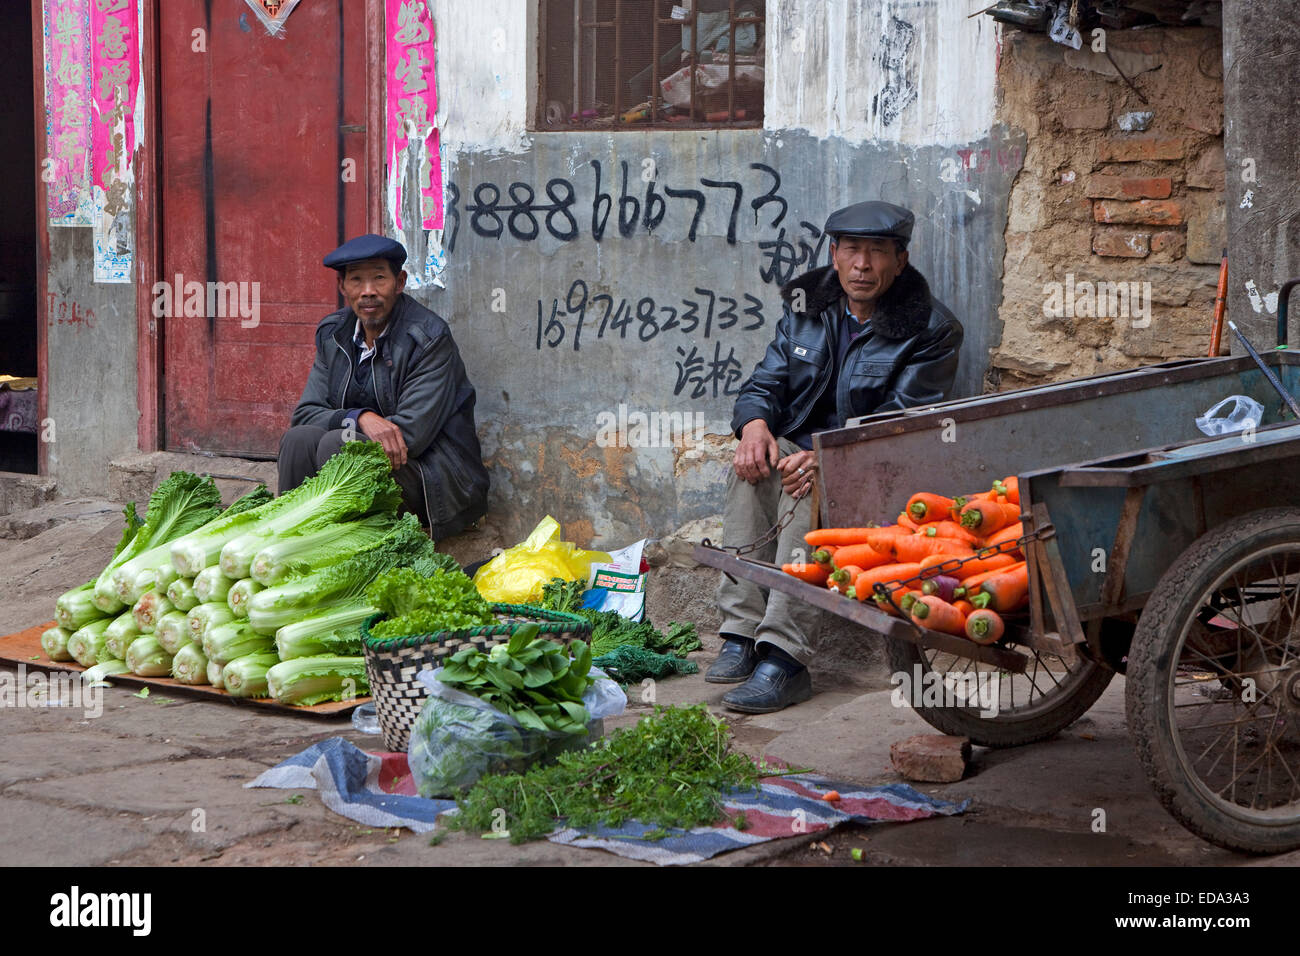 Chinese vendors selling vegetables on the street in the city Zhaotong, Yunnan province, China - Stock Image